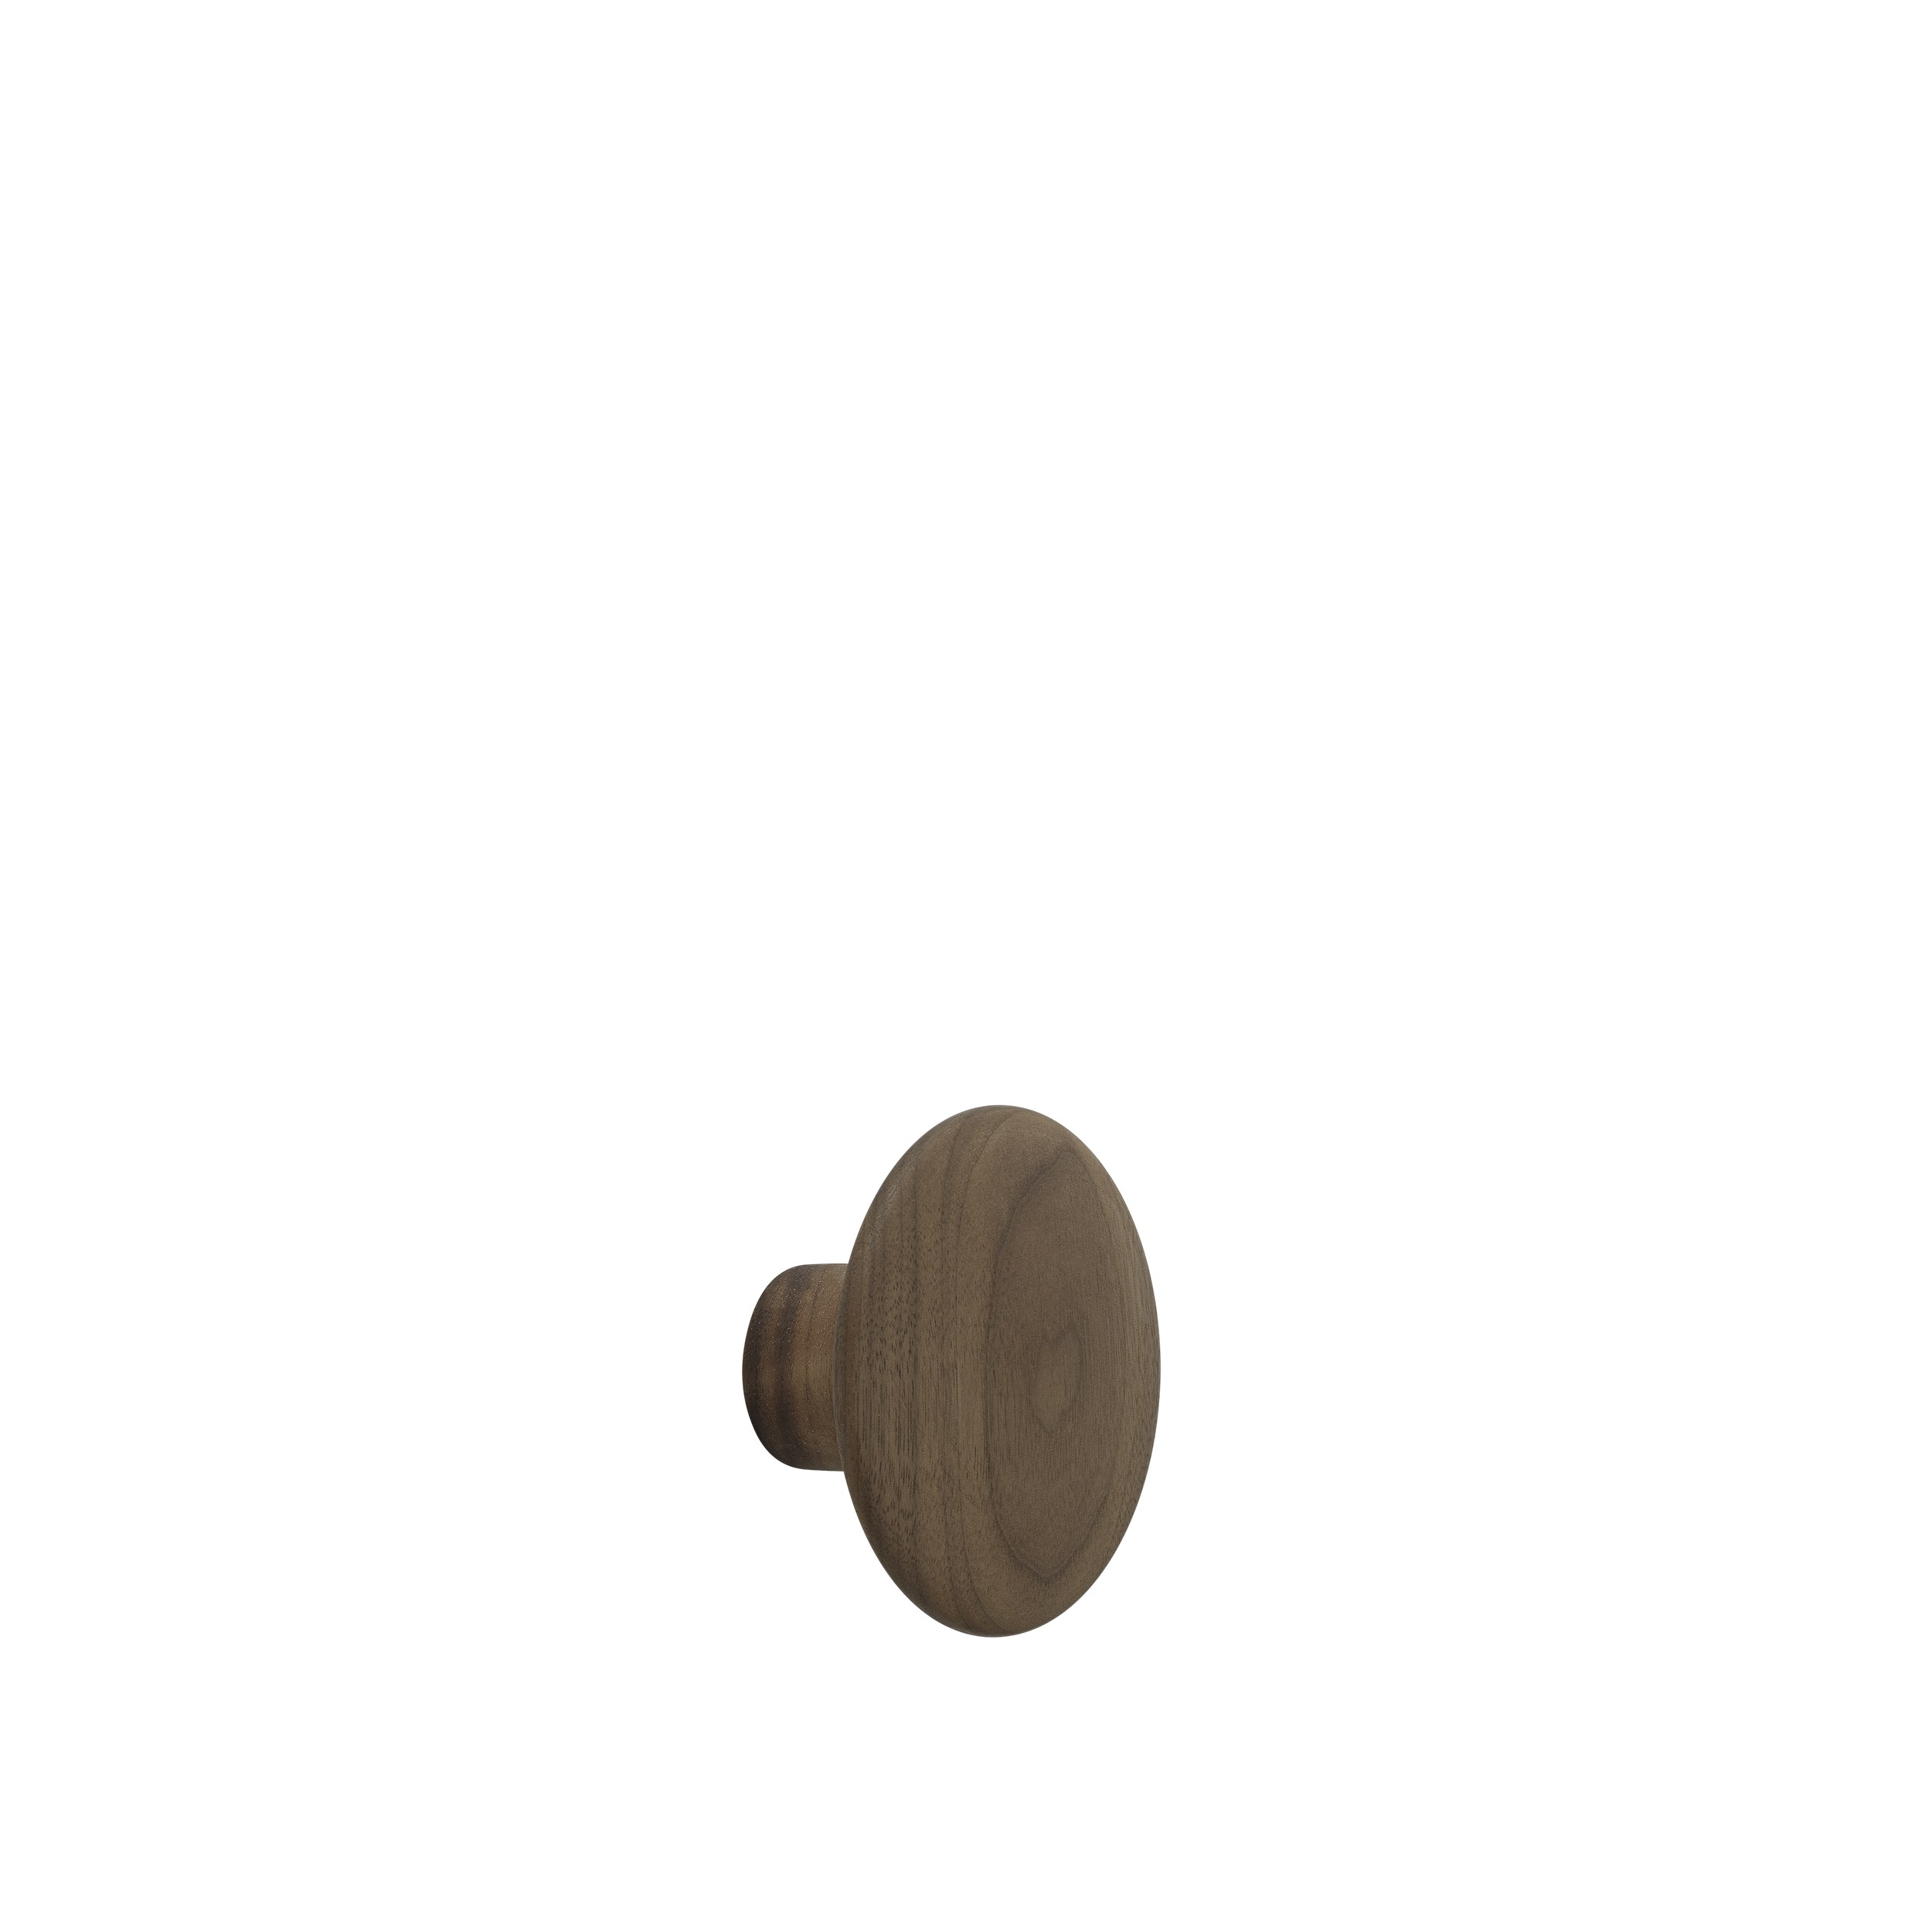 Dot wood small Ø 9 cm walnut